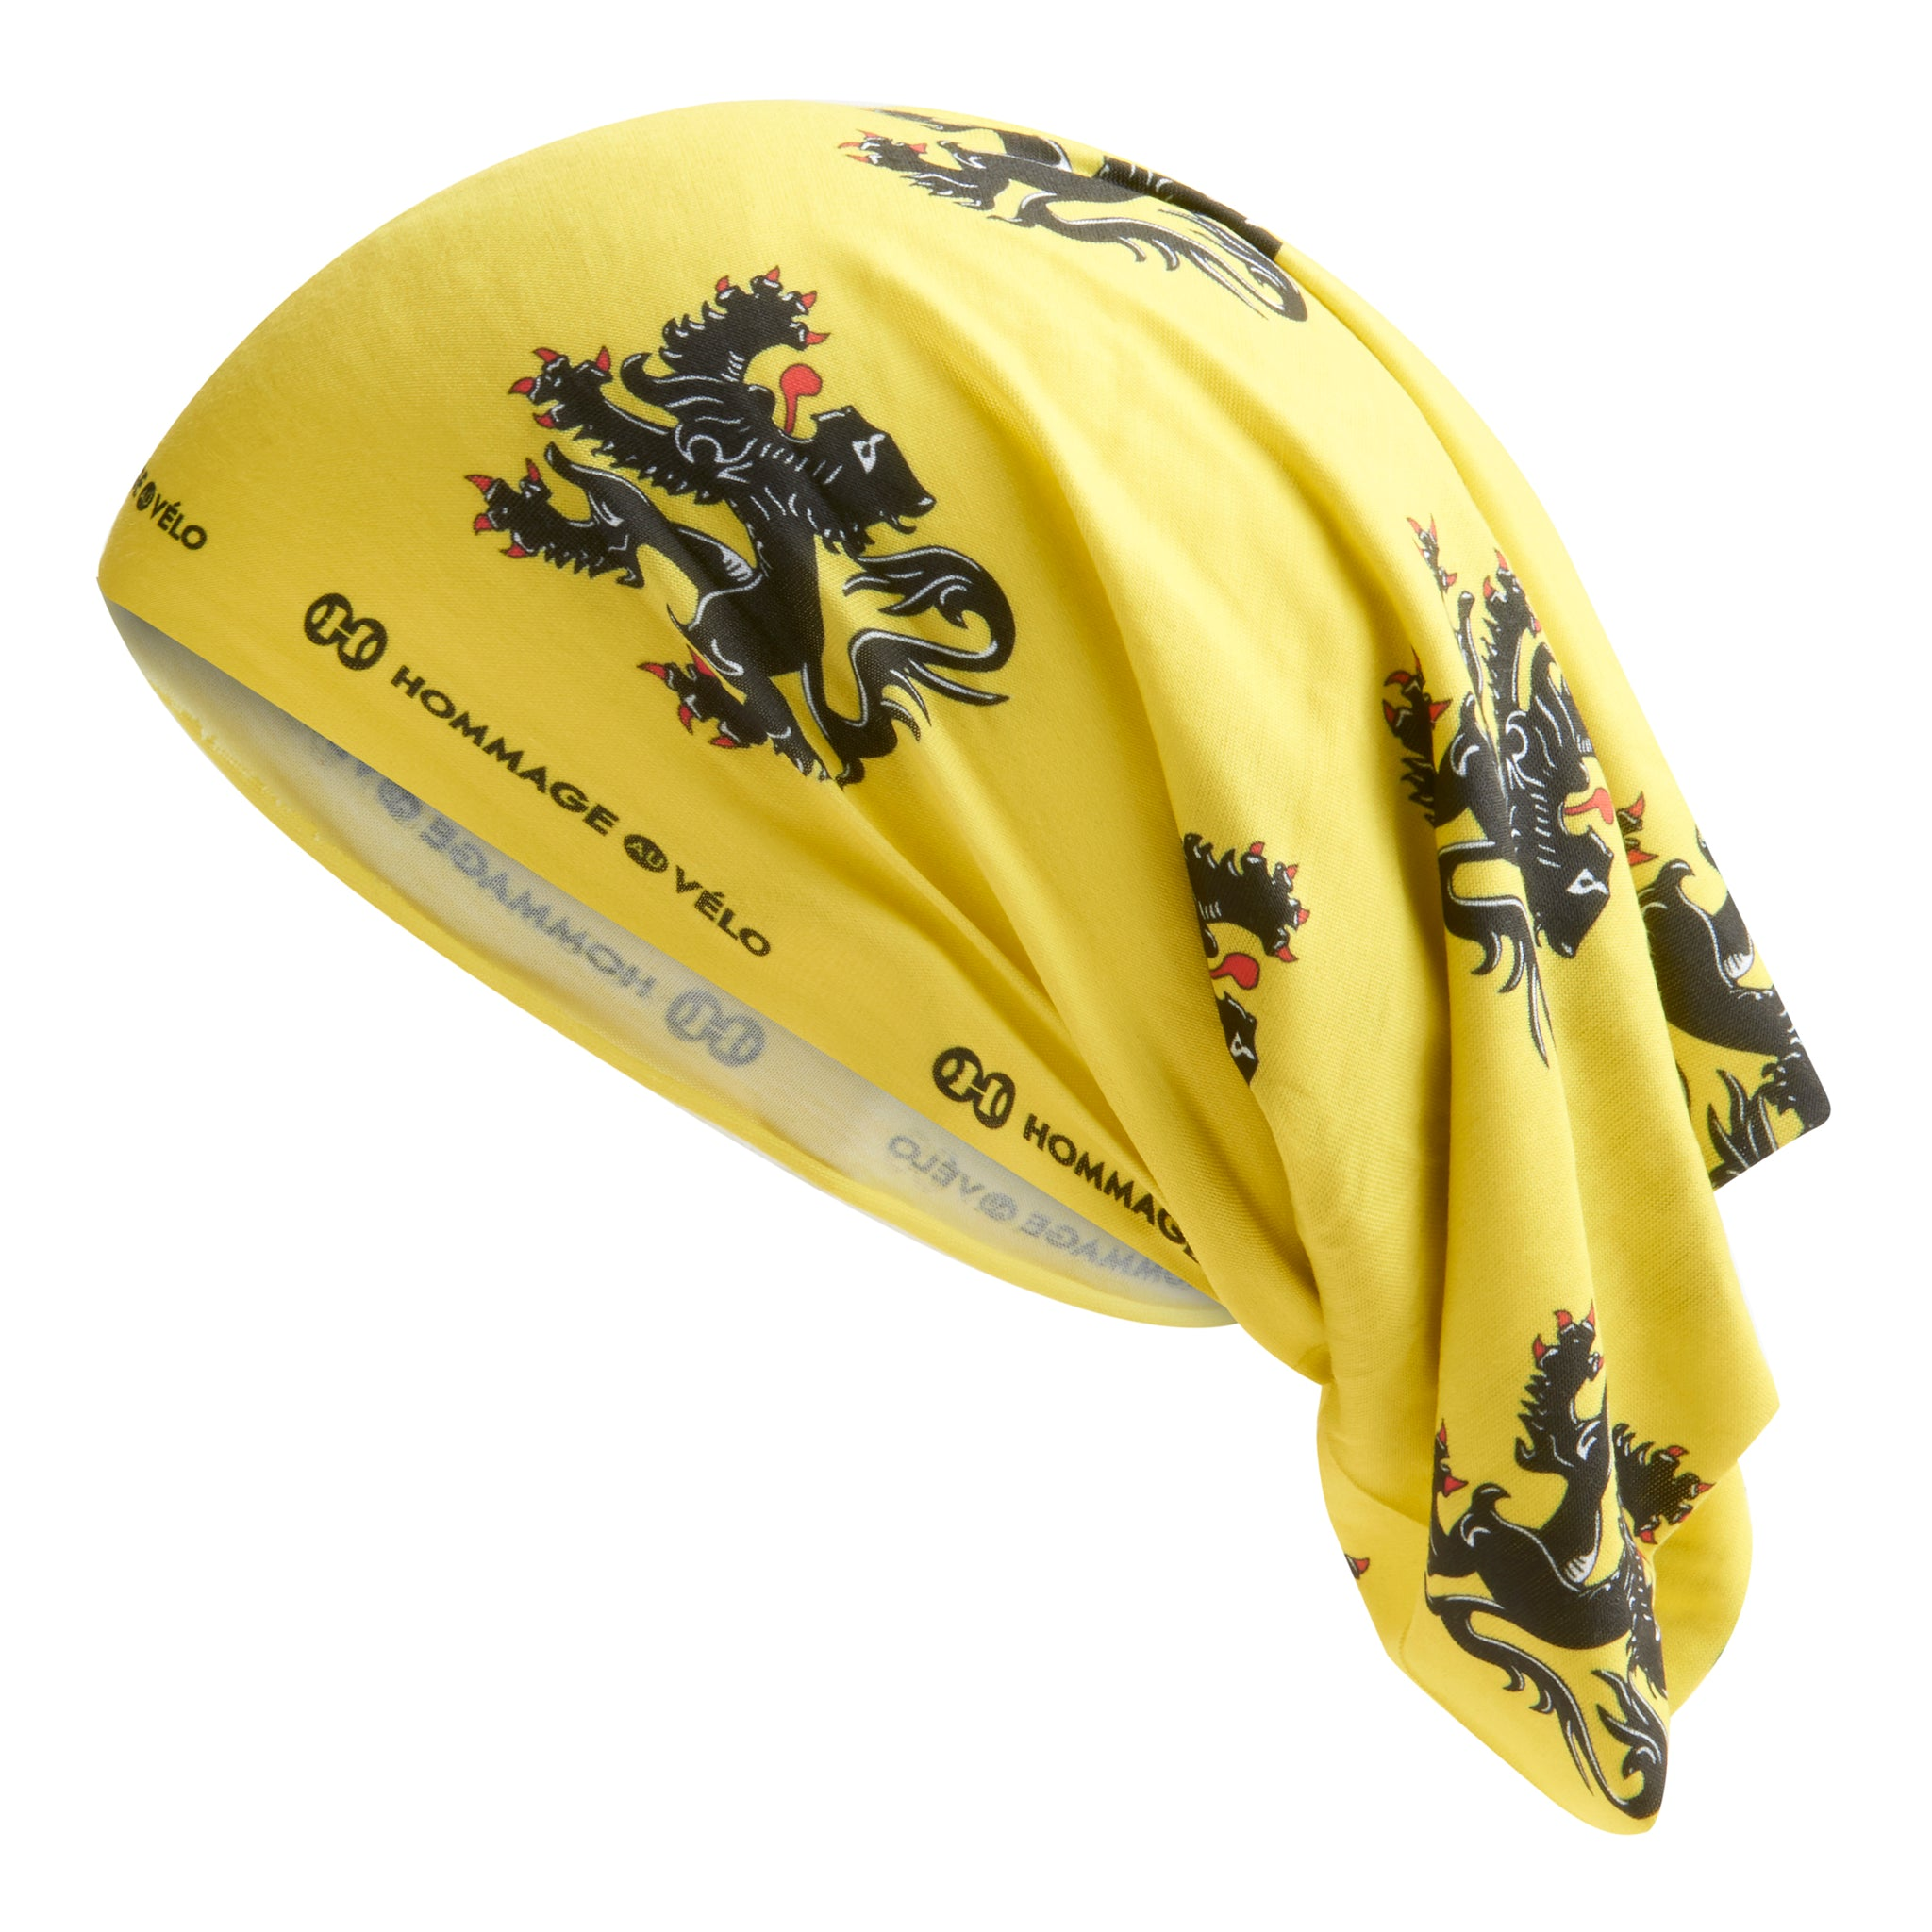 Cadoudal Neck Warmer - Yellow with Flanders Lion